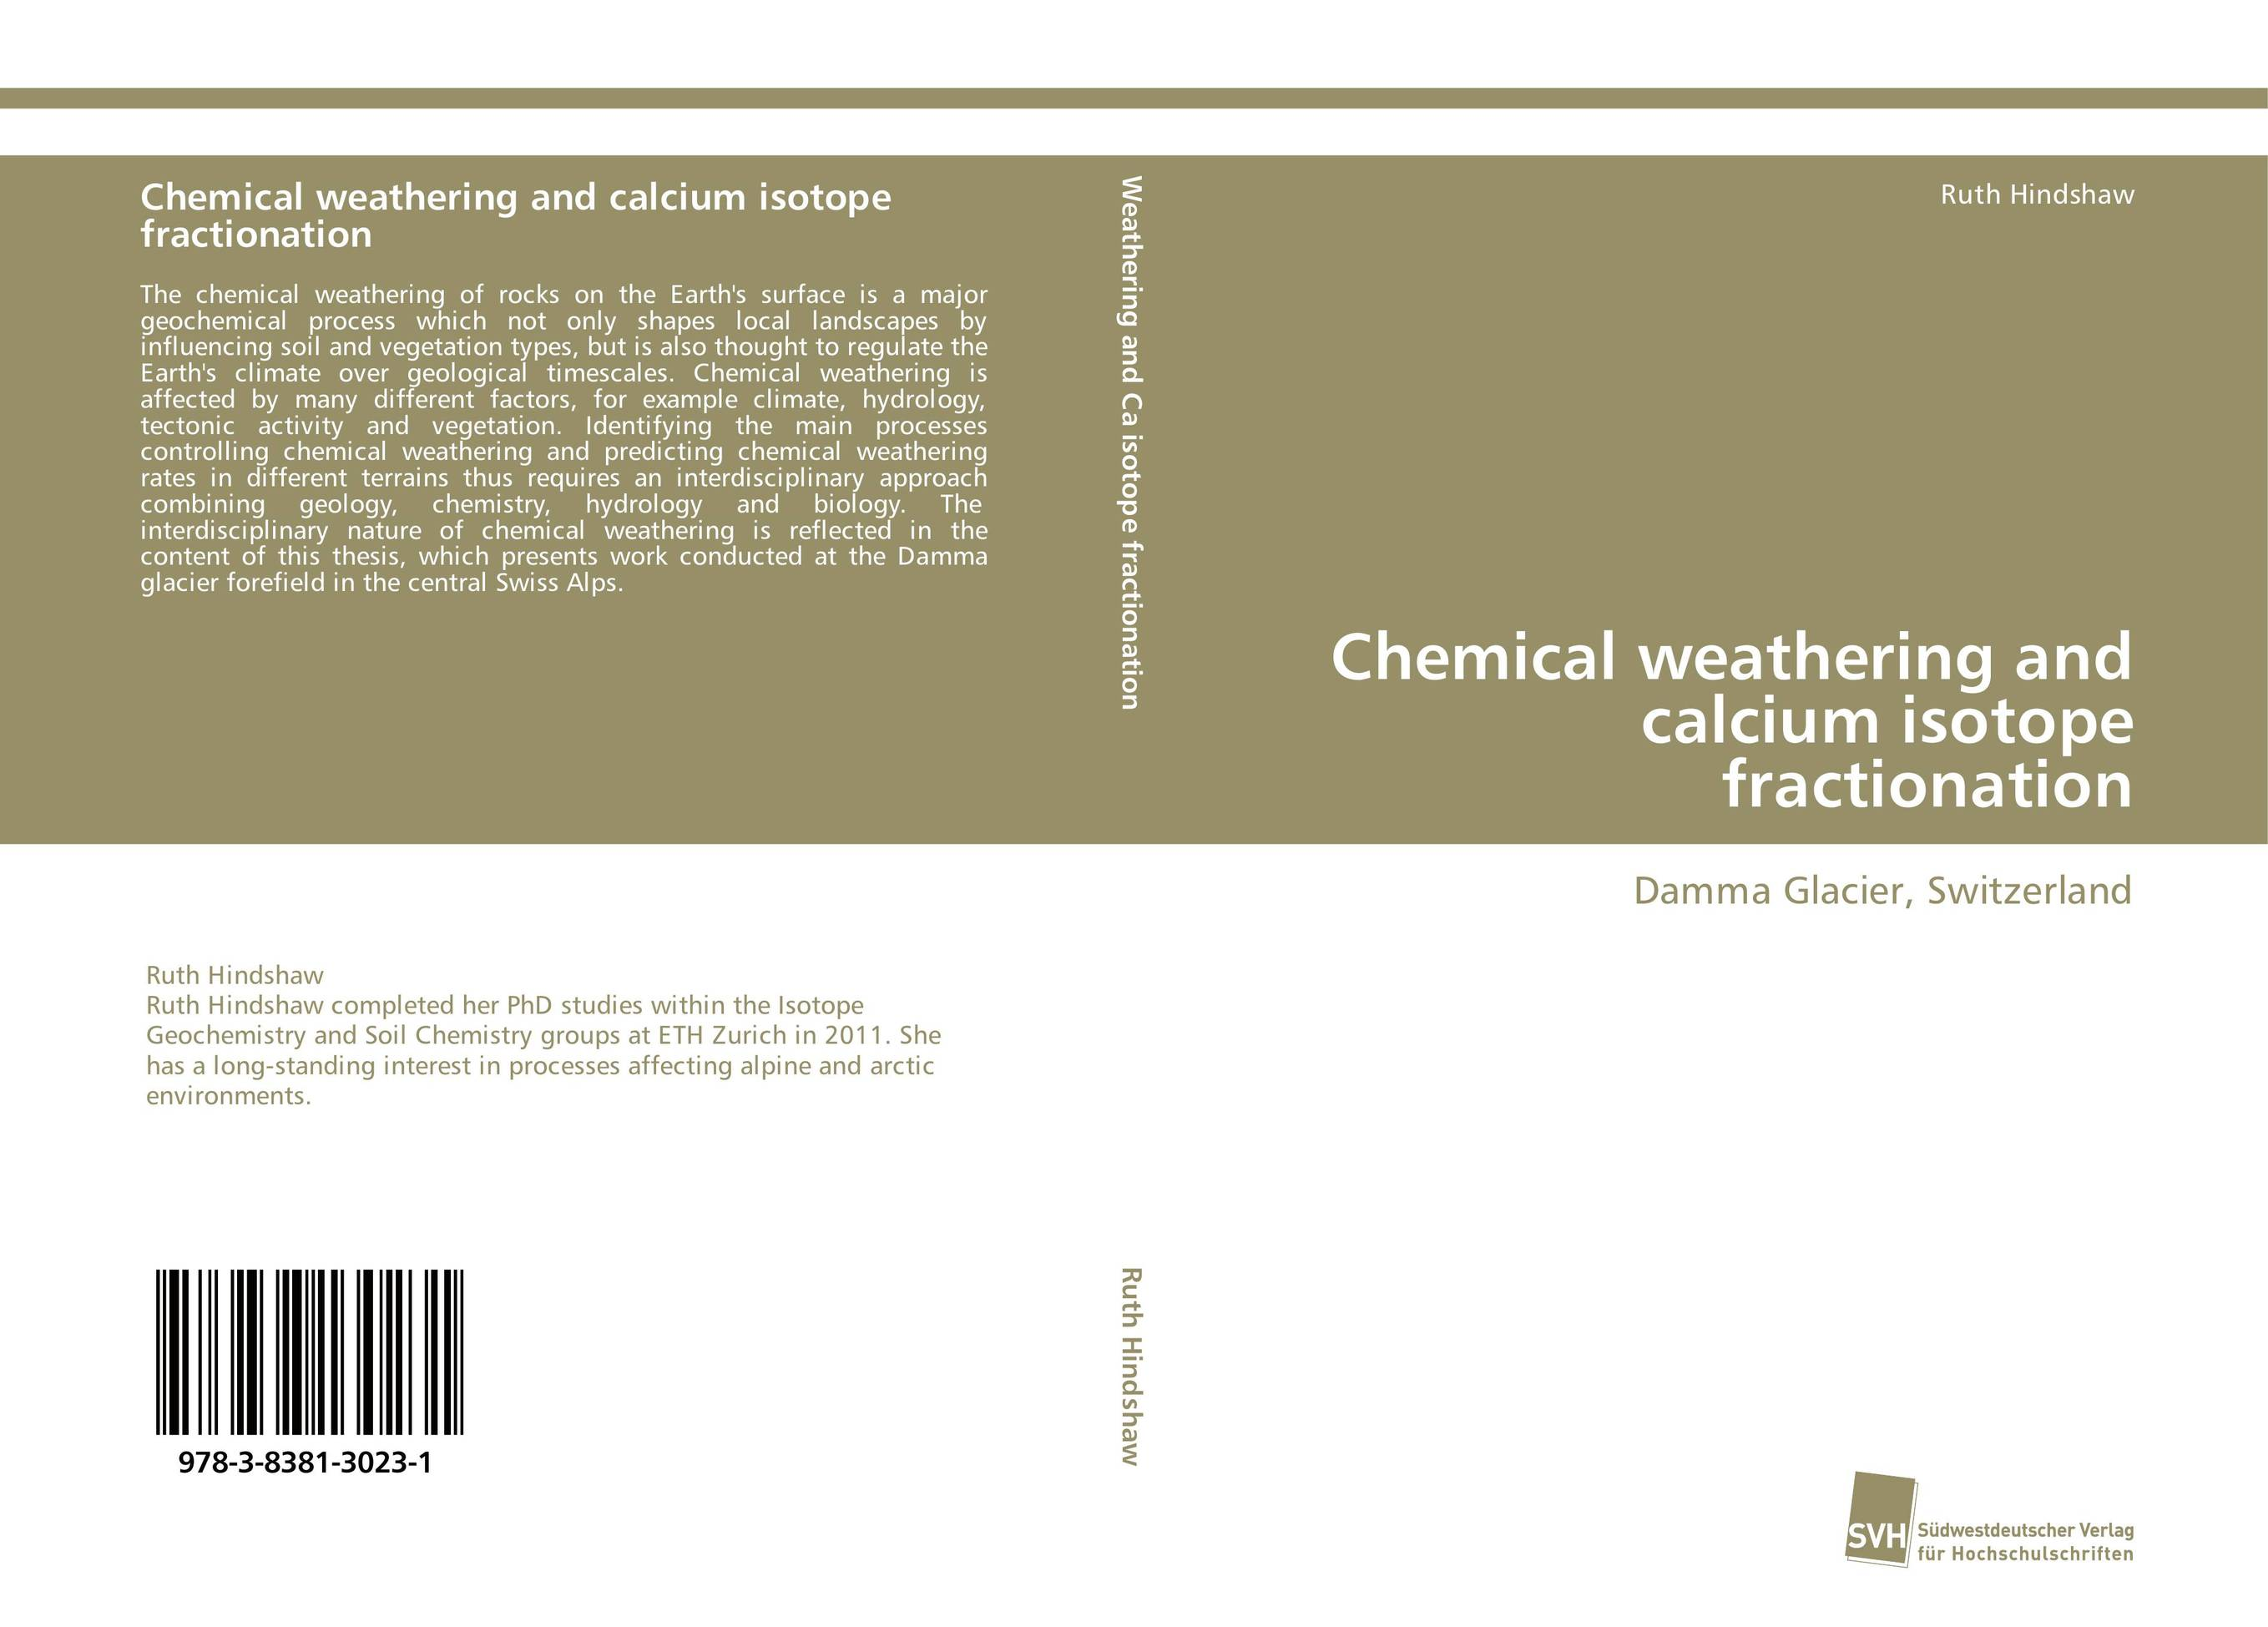 Chemical weathering and calcium isotope fractionation gurumallesh prabu and k kalapriya green chemical approach in the colouration of fabrics